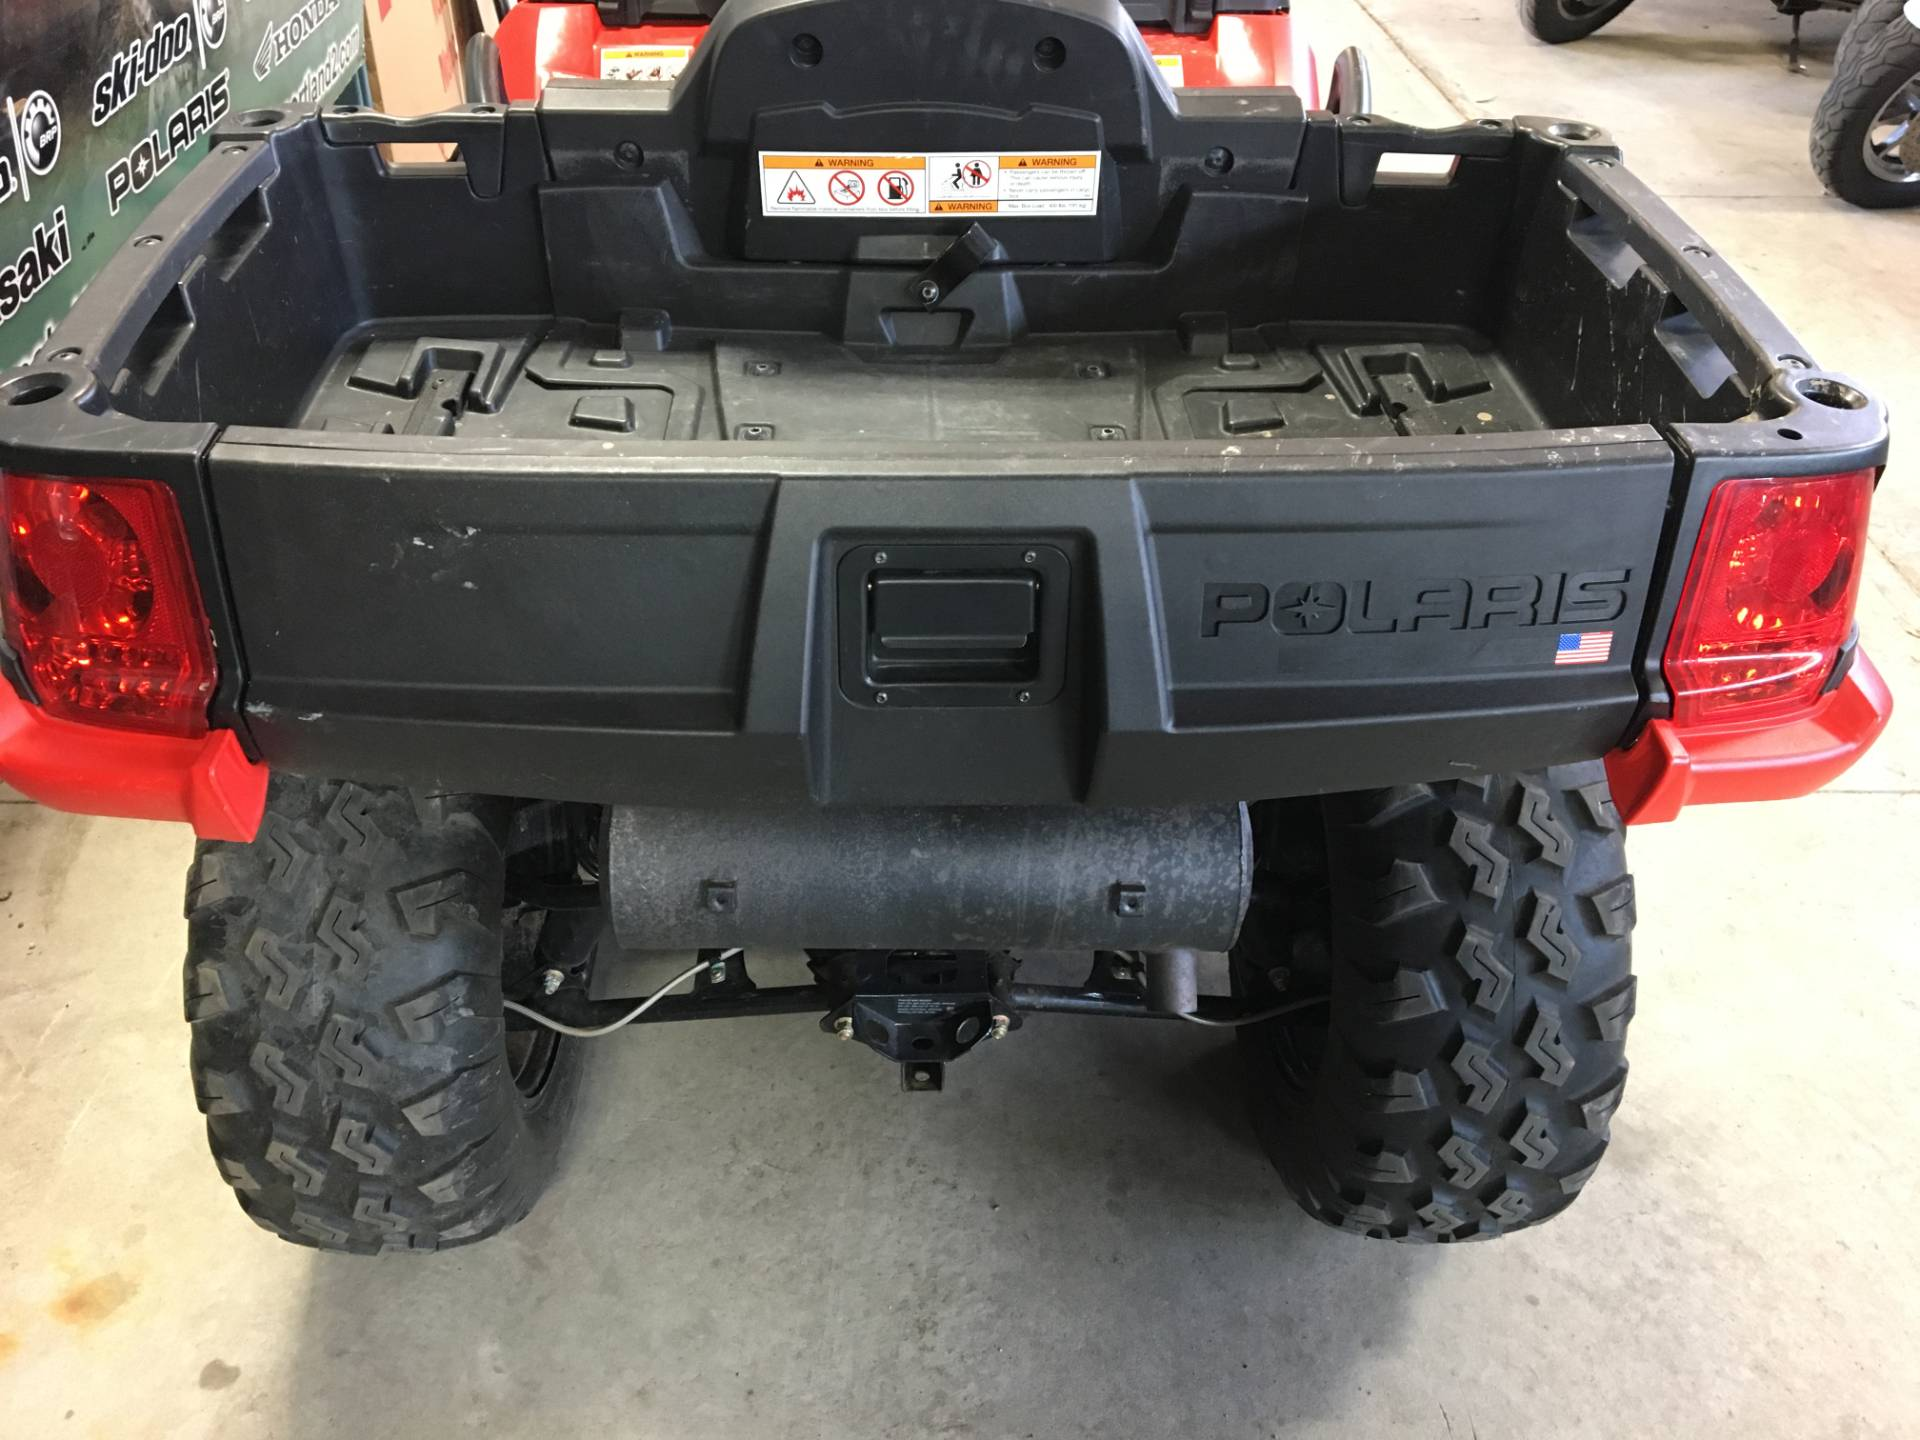 2010 Polaris Sportsman® 550 X2 in Oak Creek, Wisconsin - Photo 6